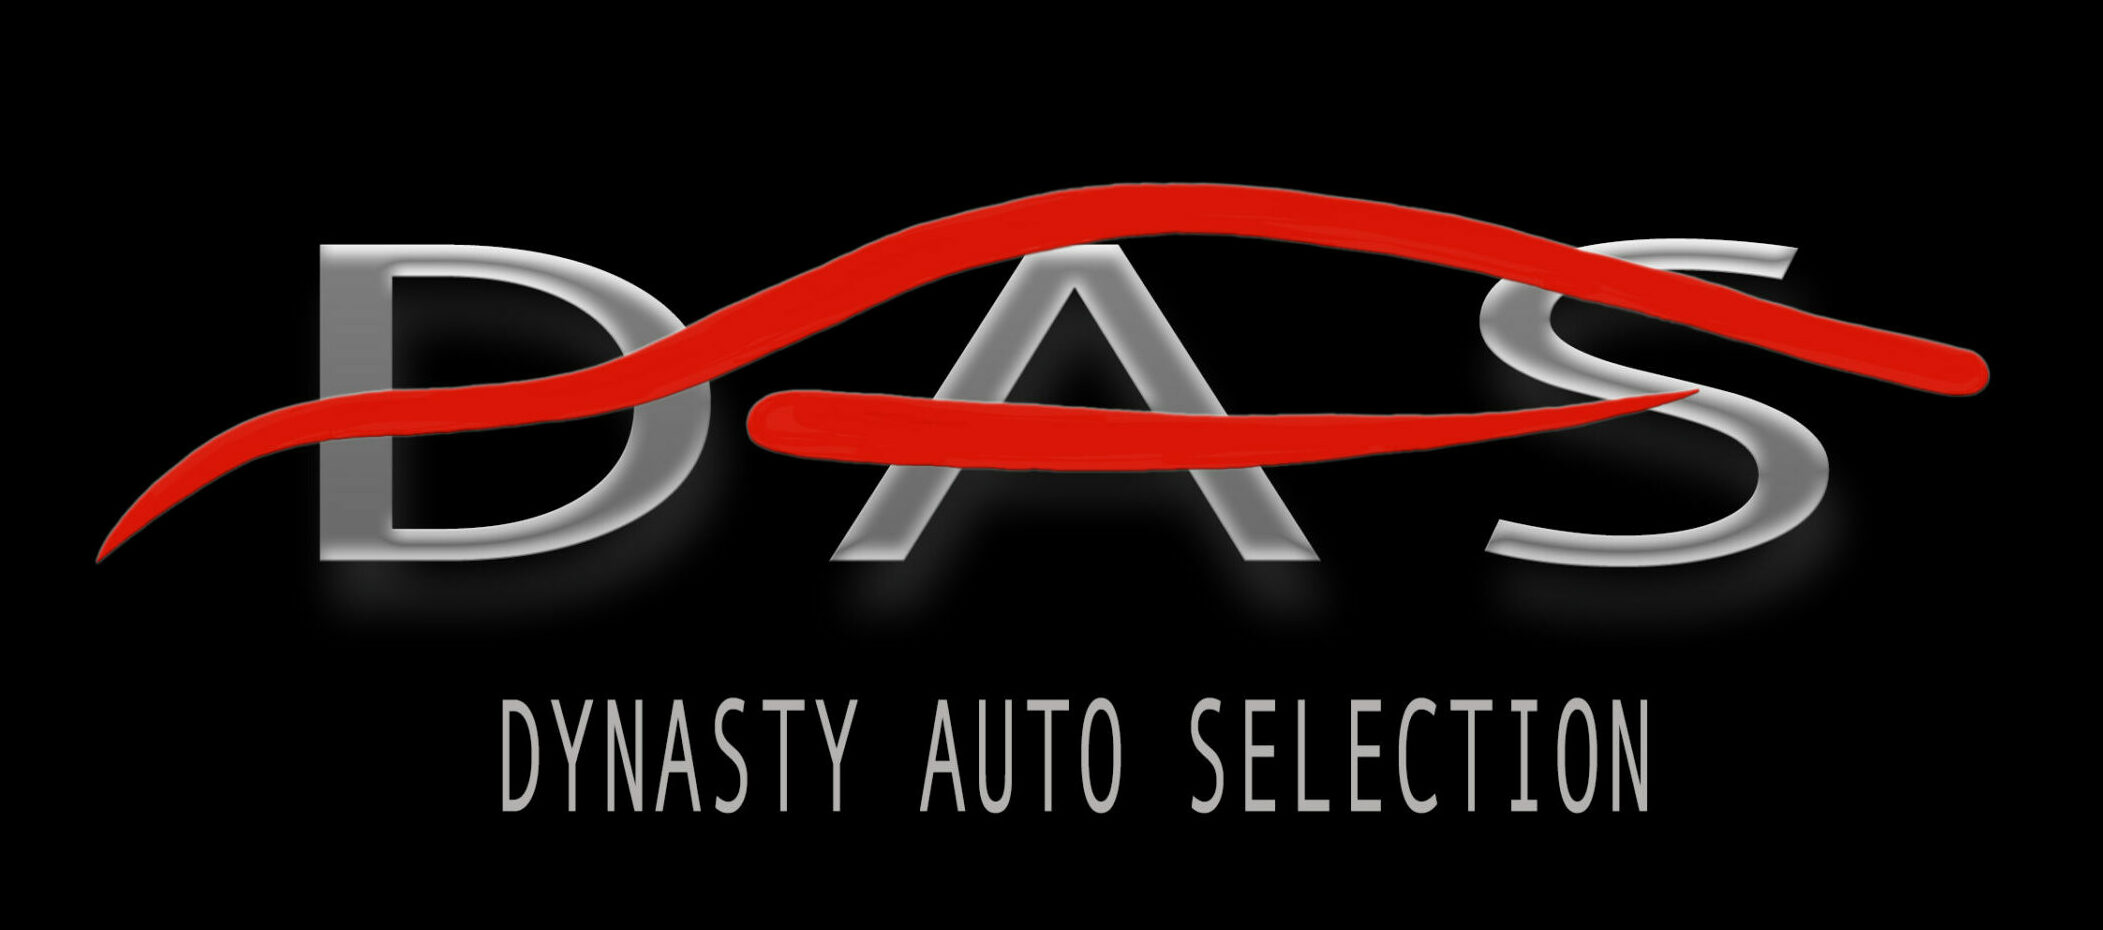 Dynasty Auto Selection logo